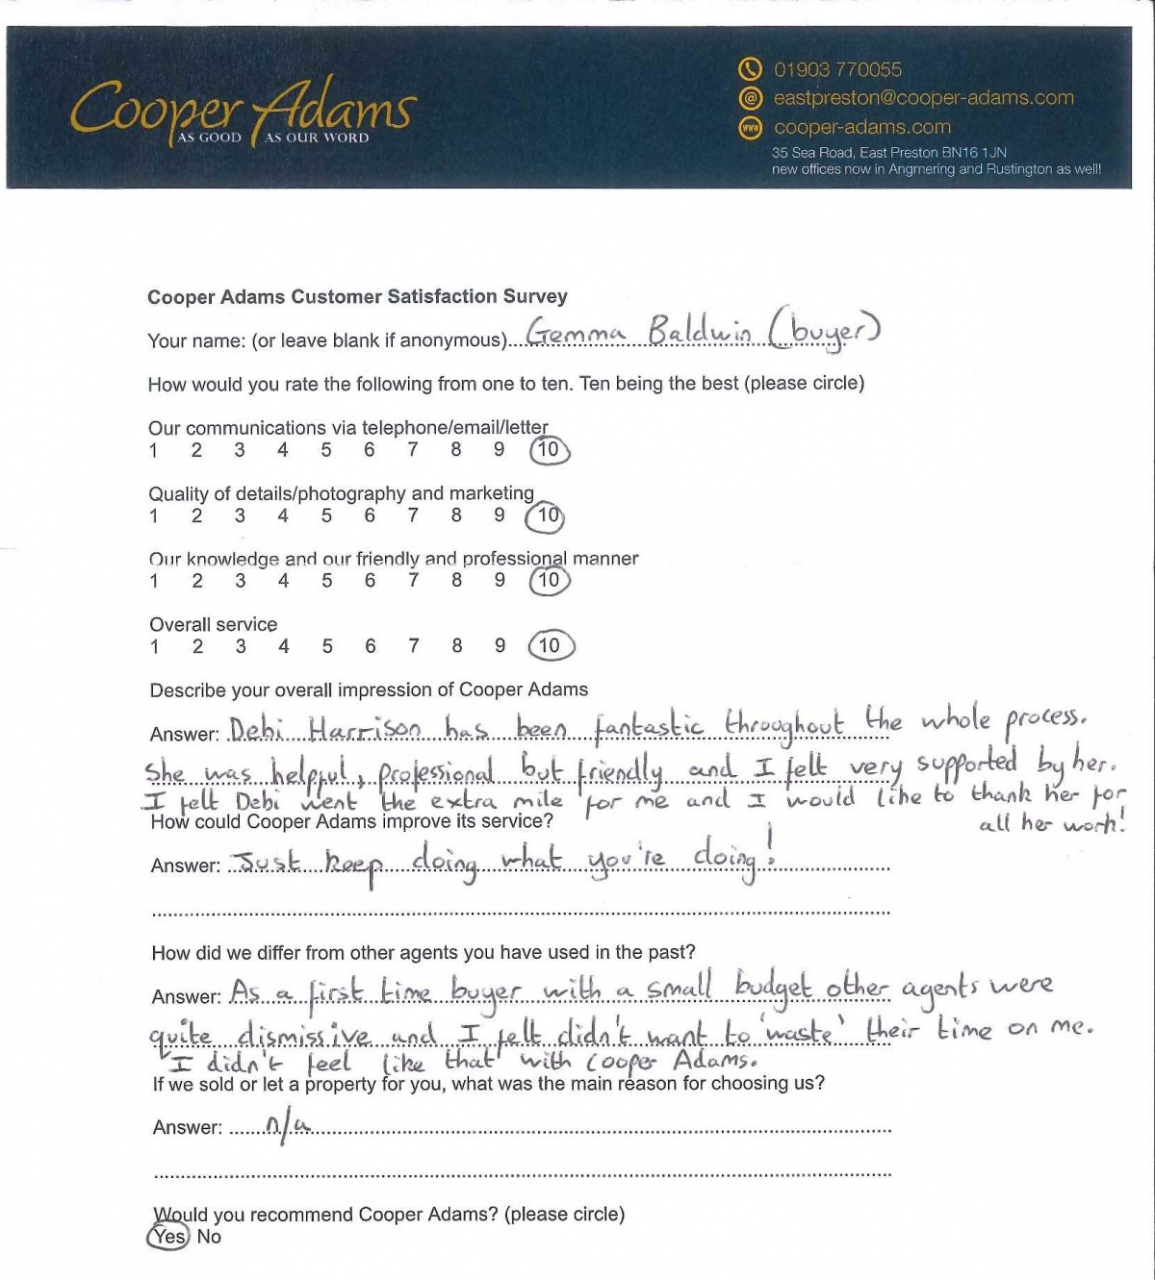 Customer satisfaction survey - Gemma Baldwin